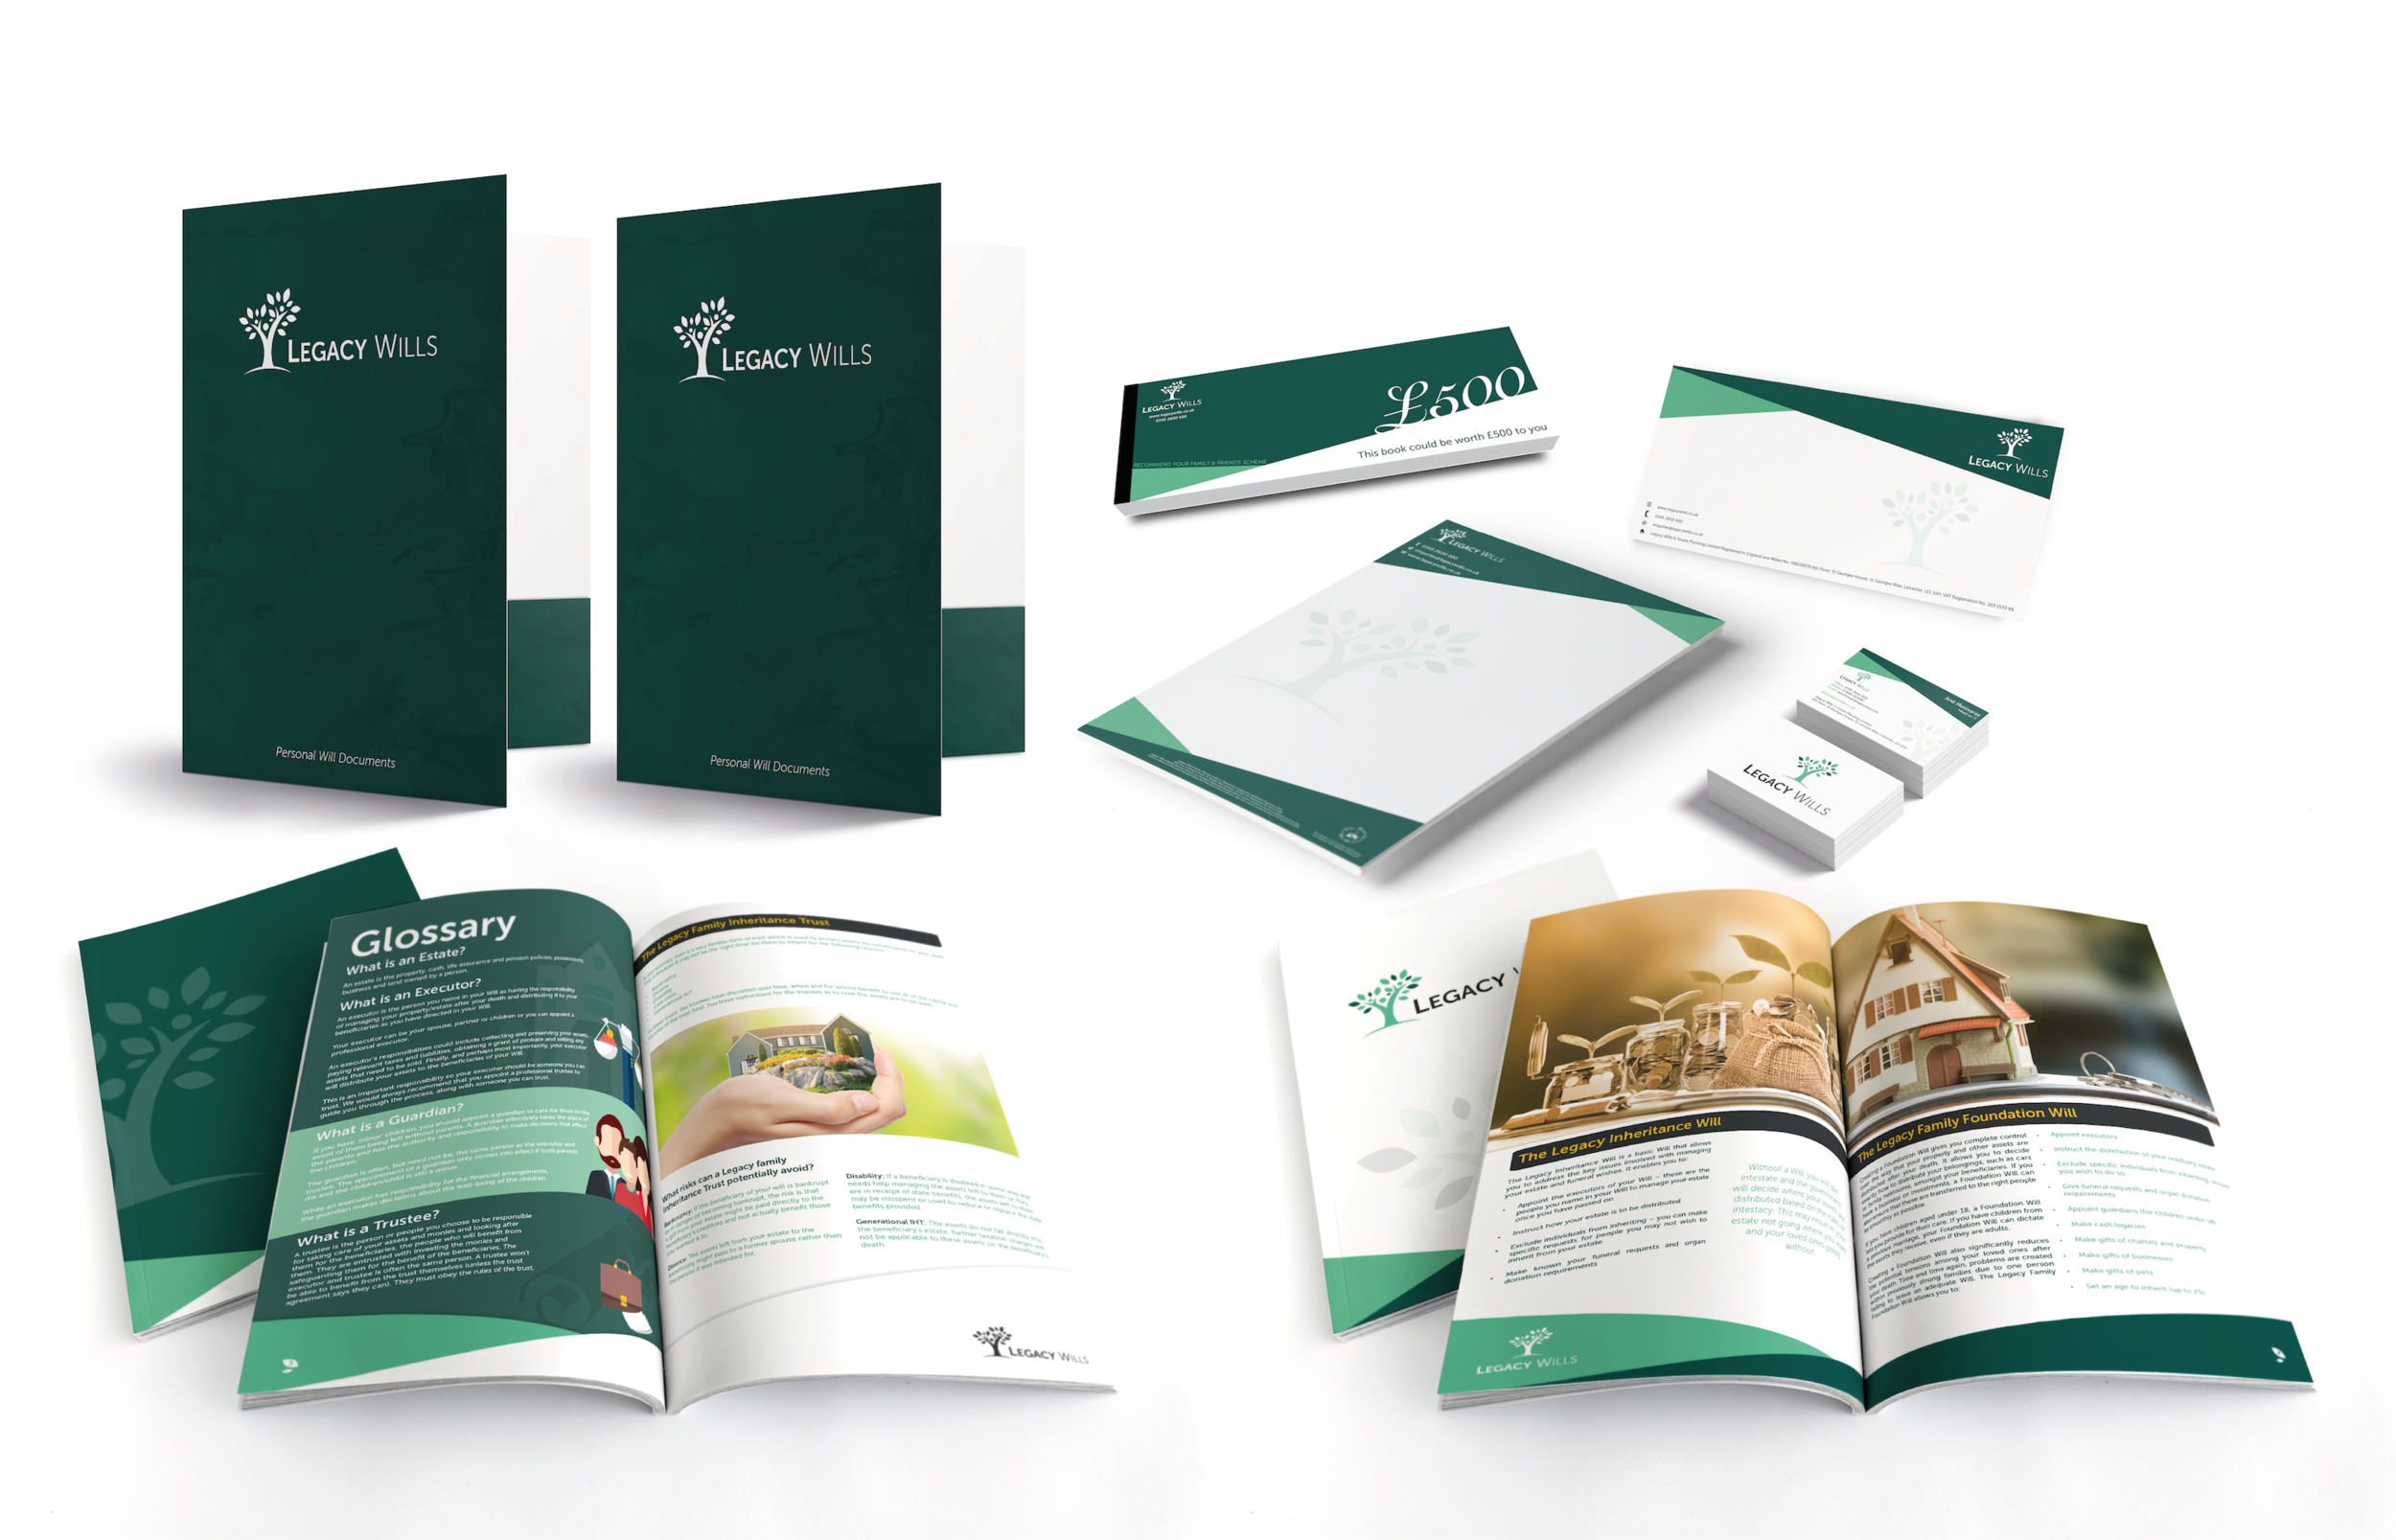 Corporate Literature Design for Legacy Wills, Leicester